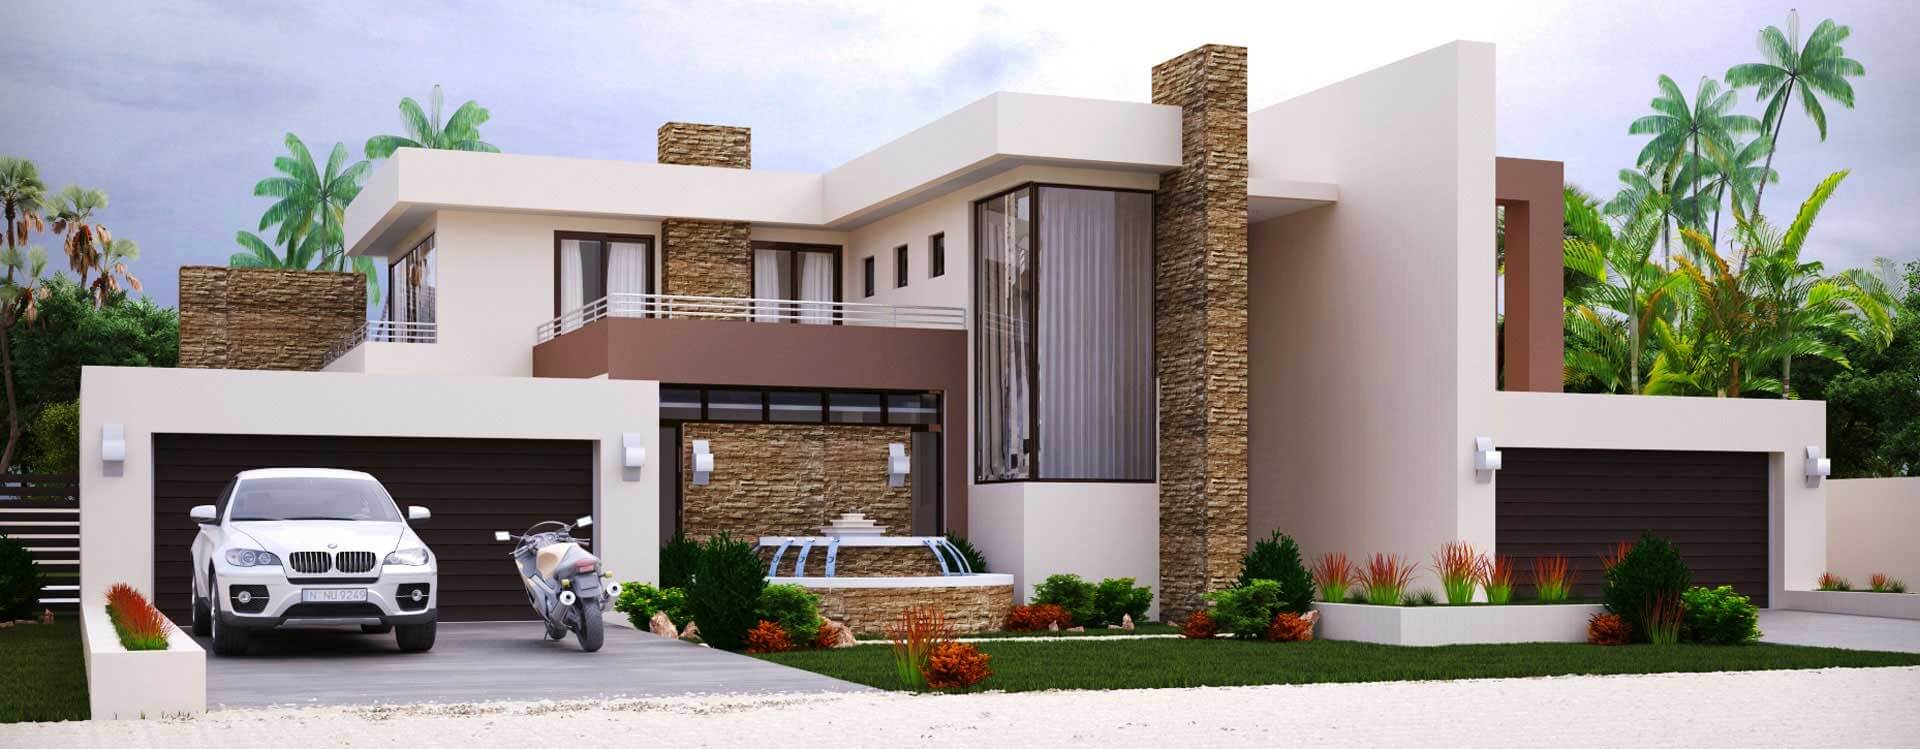 Modern style house plan 4 bedroom double storey floor plans home design